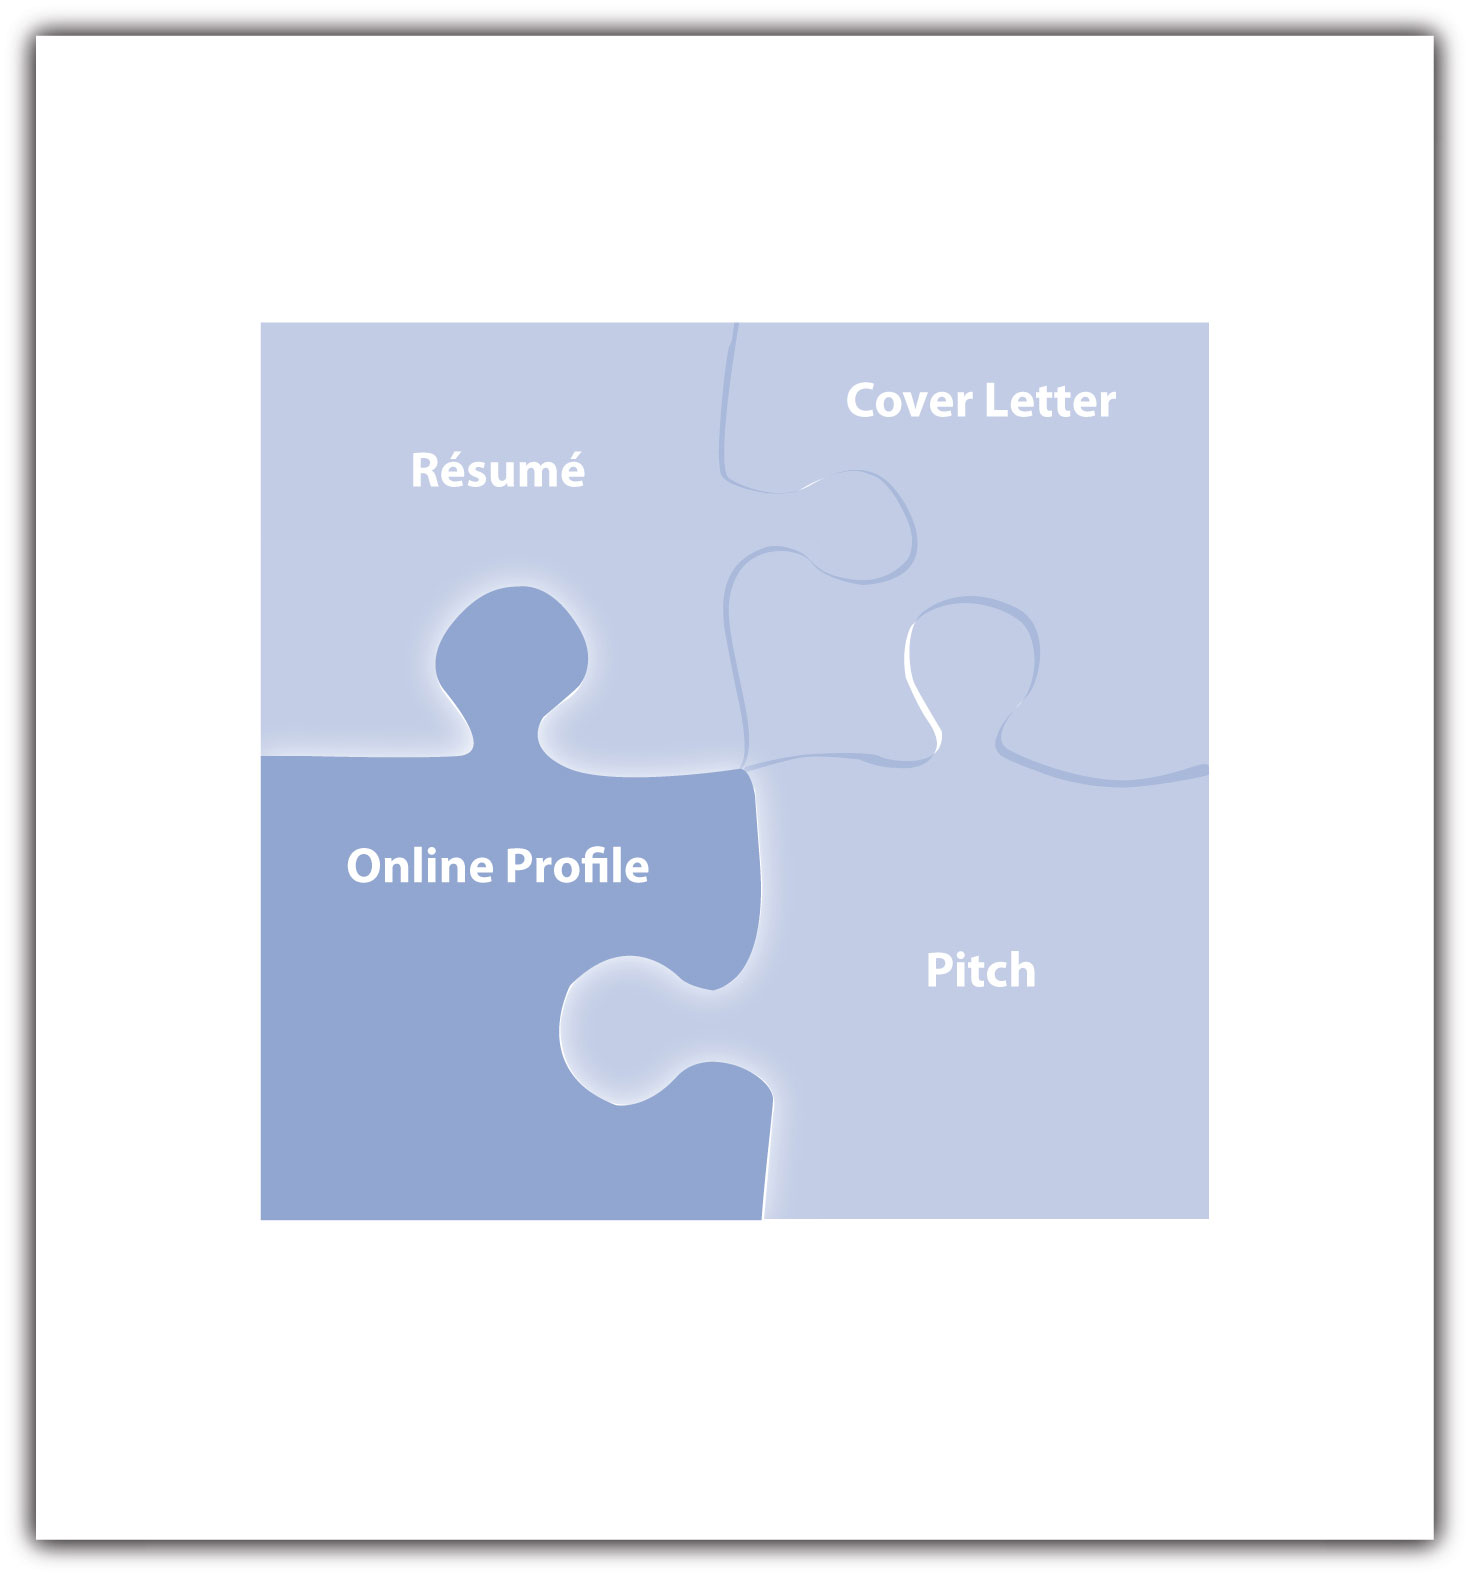 Resume Puzzle Pieces Highlighting Online Profile